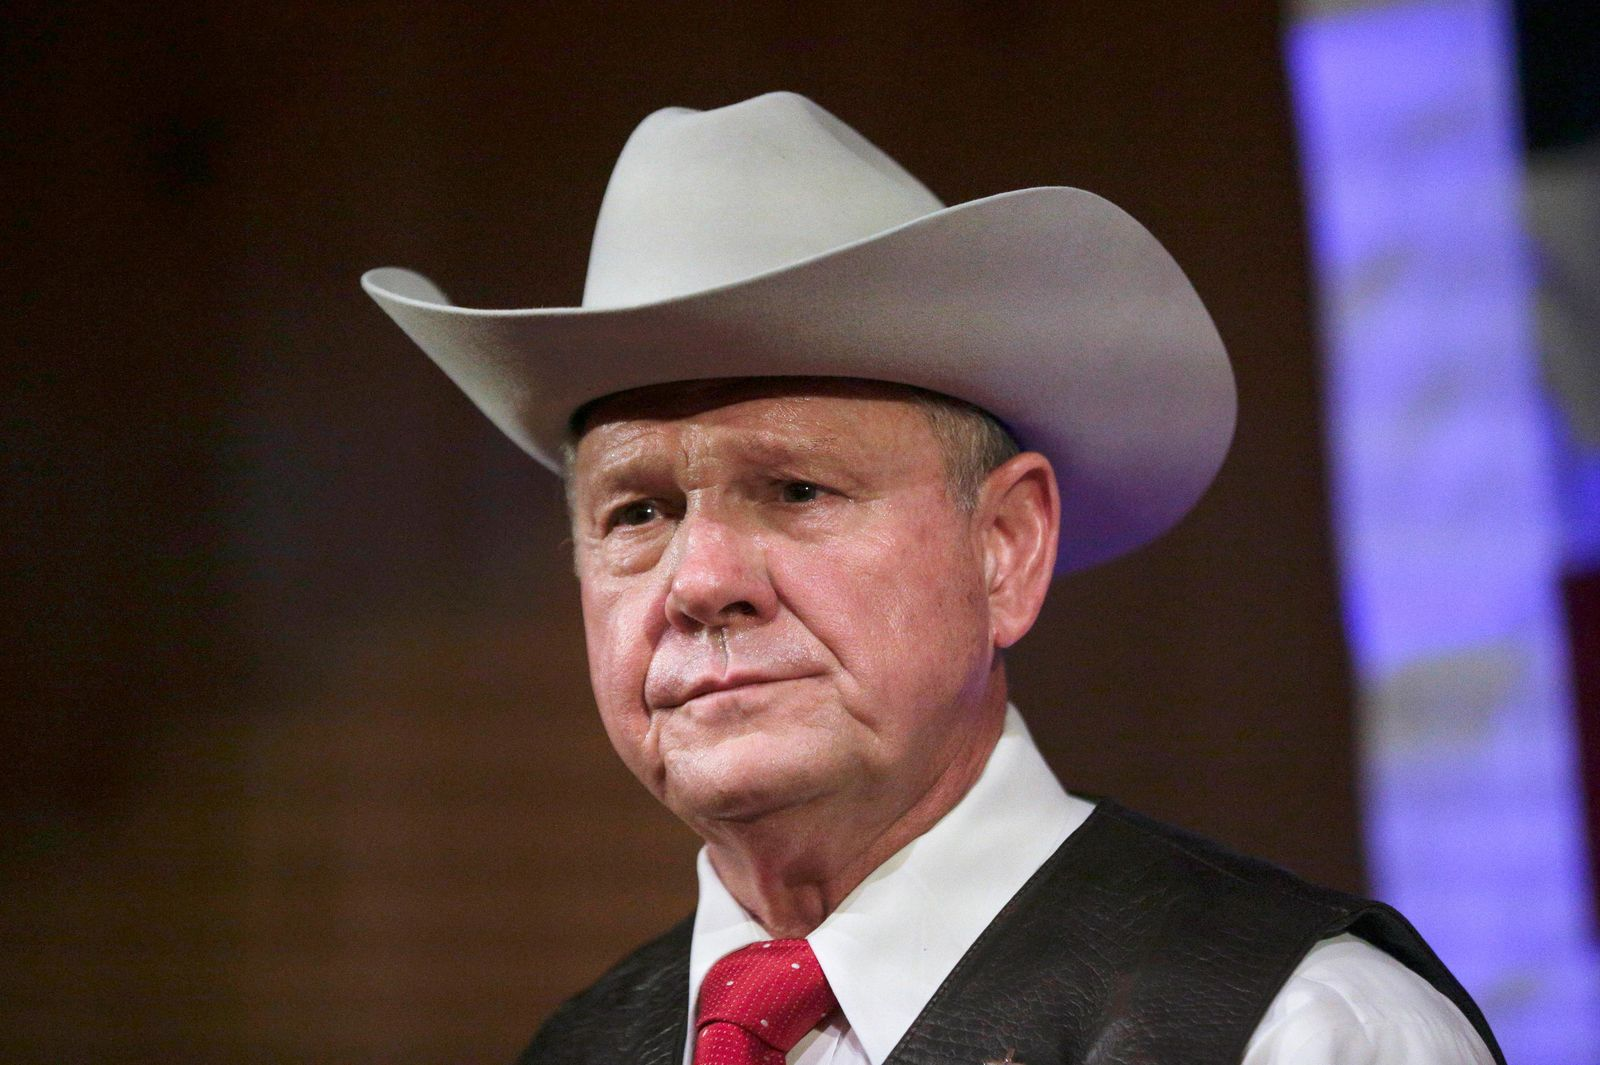 In this Sept. 25, 2017 file photo, former Alabama Chief Justice and U.S. Senate candidate Roy Moore speaks at a rally in Fairhope, Ala. (AP Photo/Brynn Anderson, File)